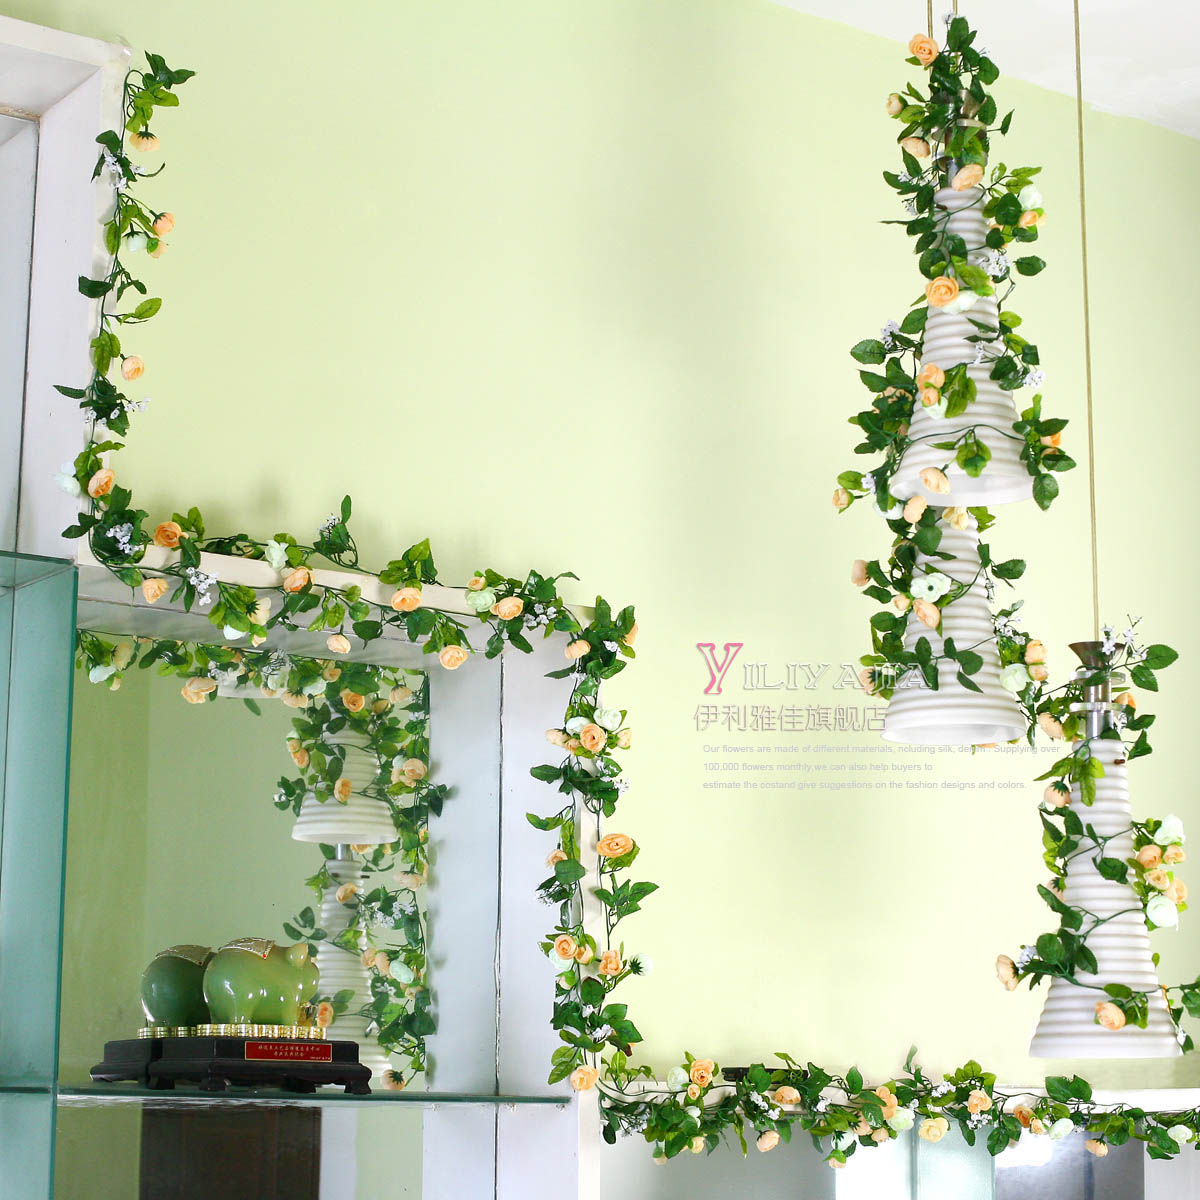 Correlation artificial flowers vine plants qihii home for Artificial trees for home decoration